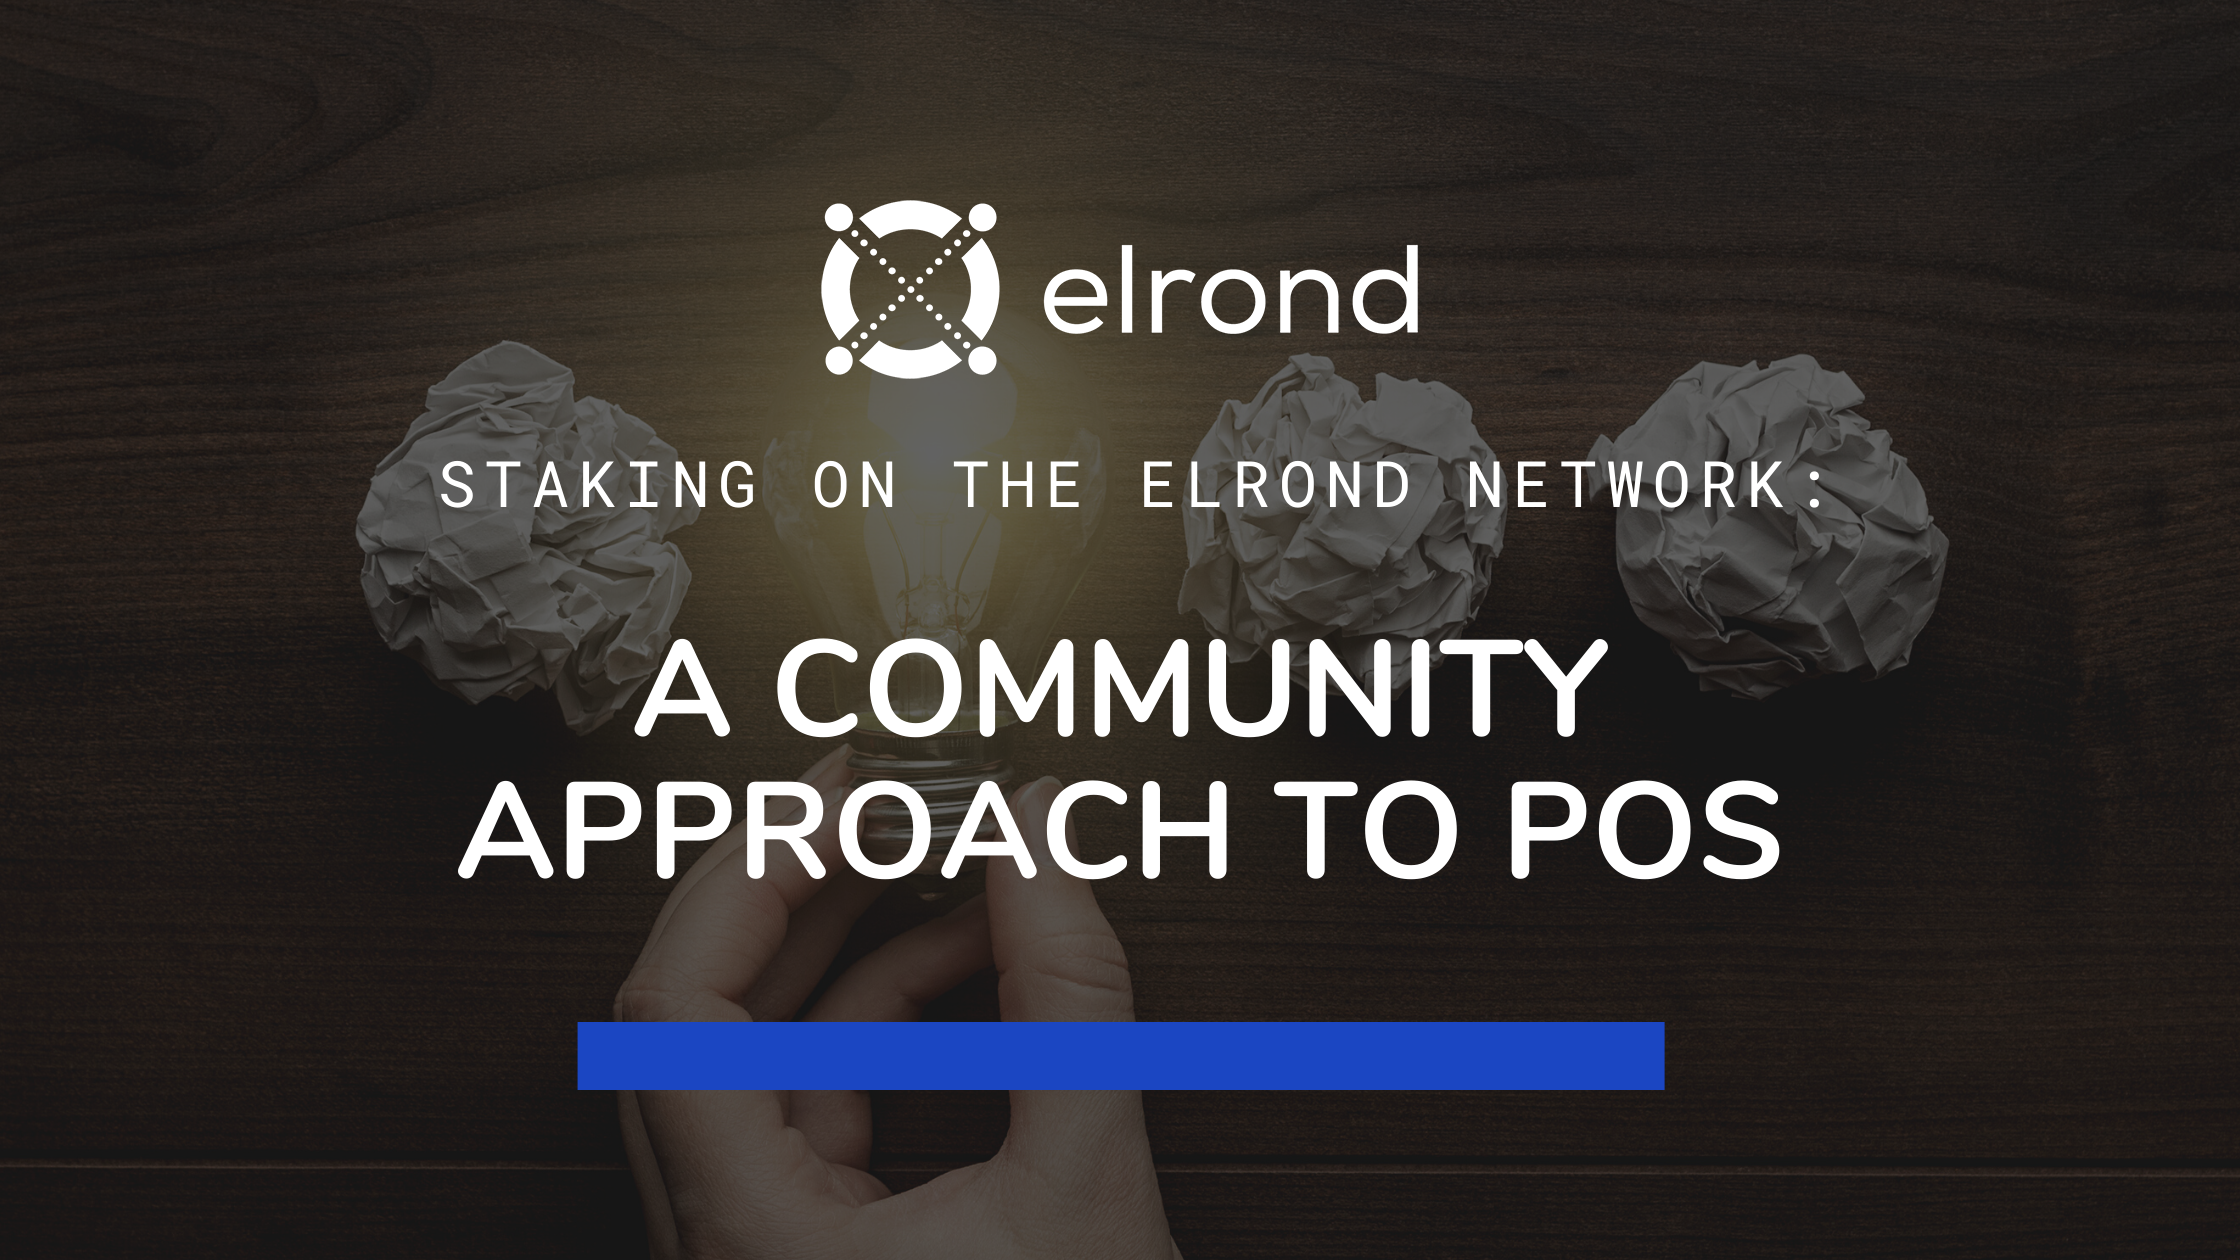 A community approach to staking on the Elrond Network.